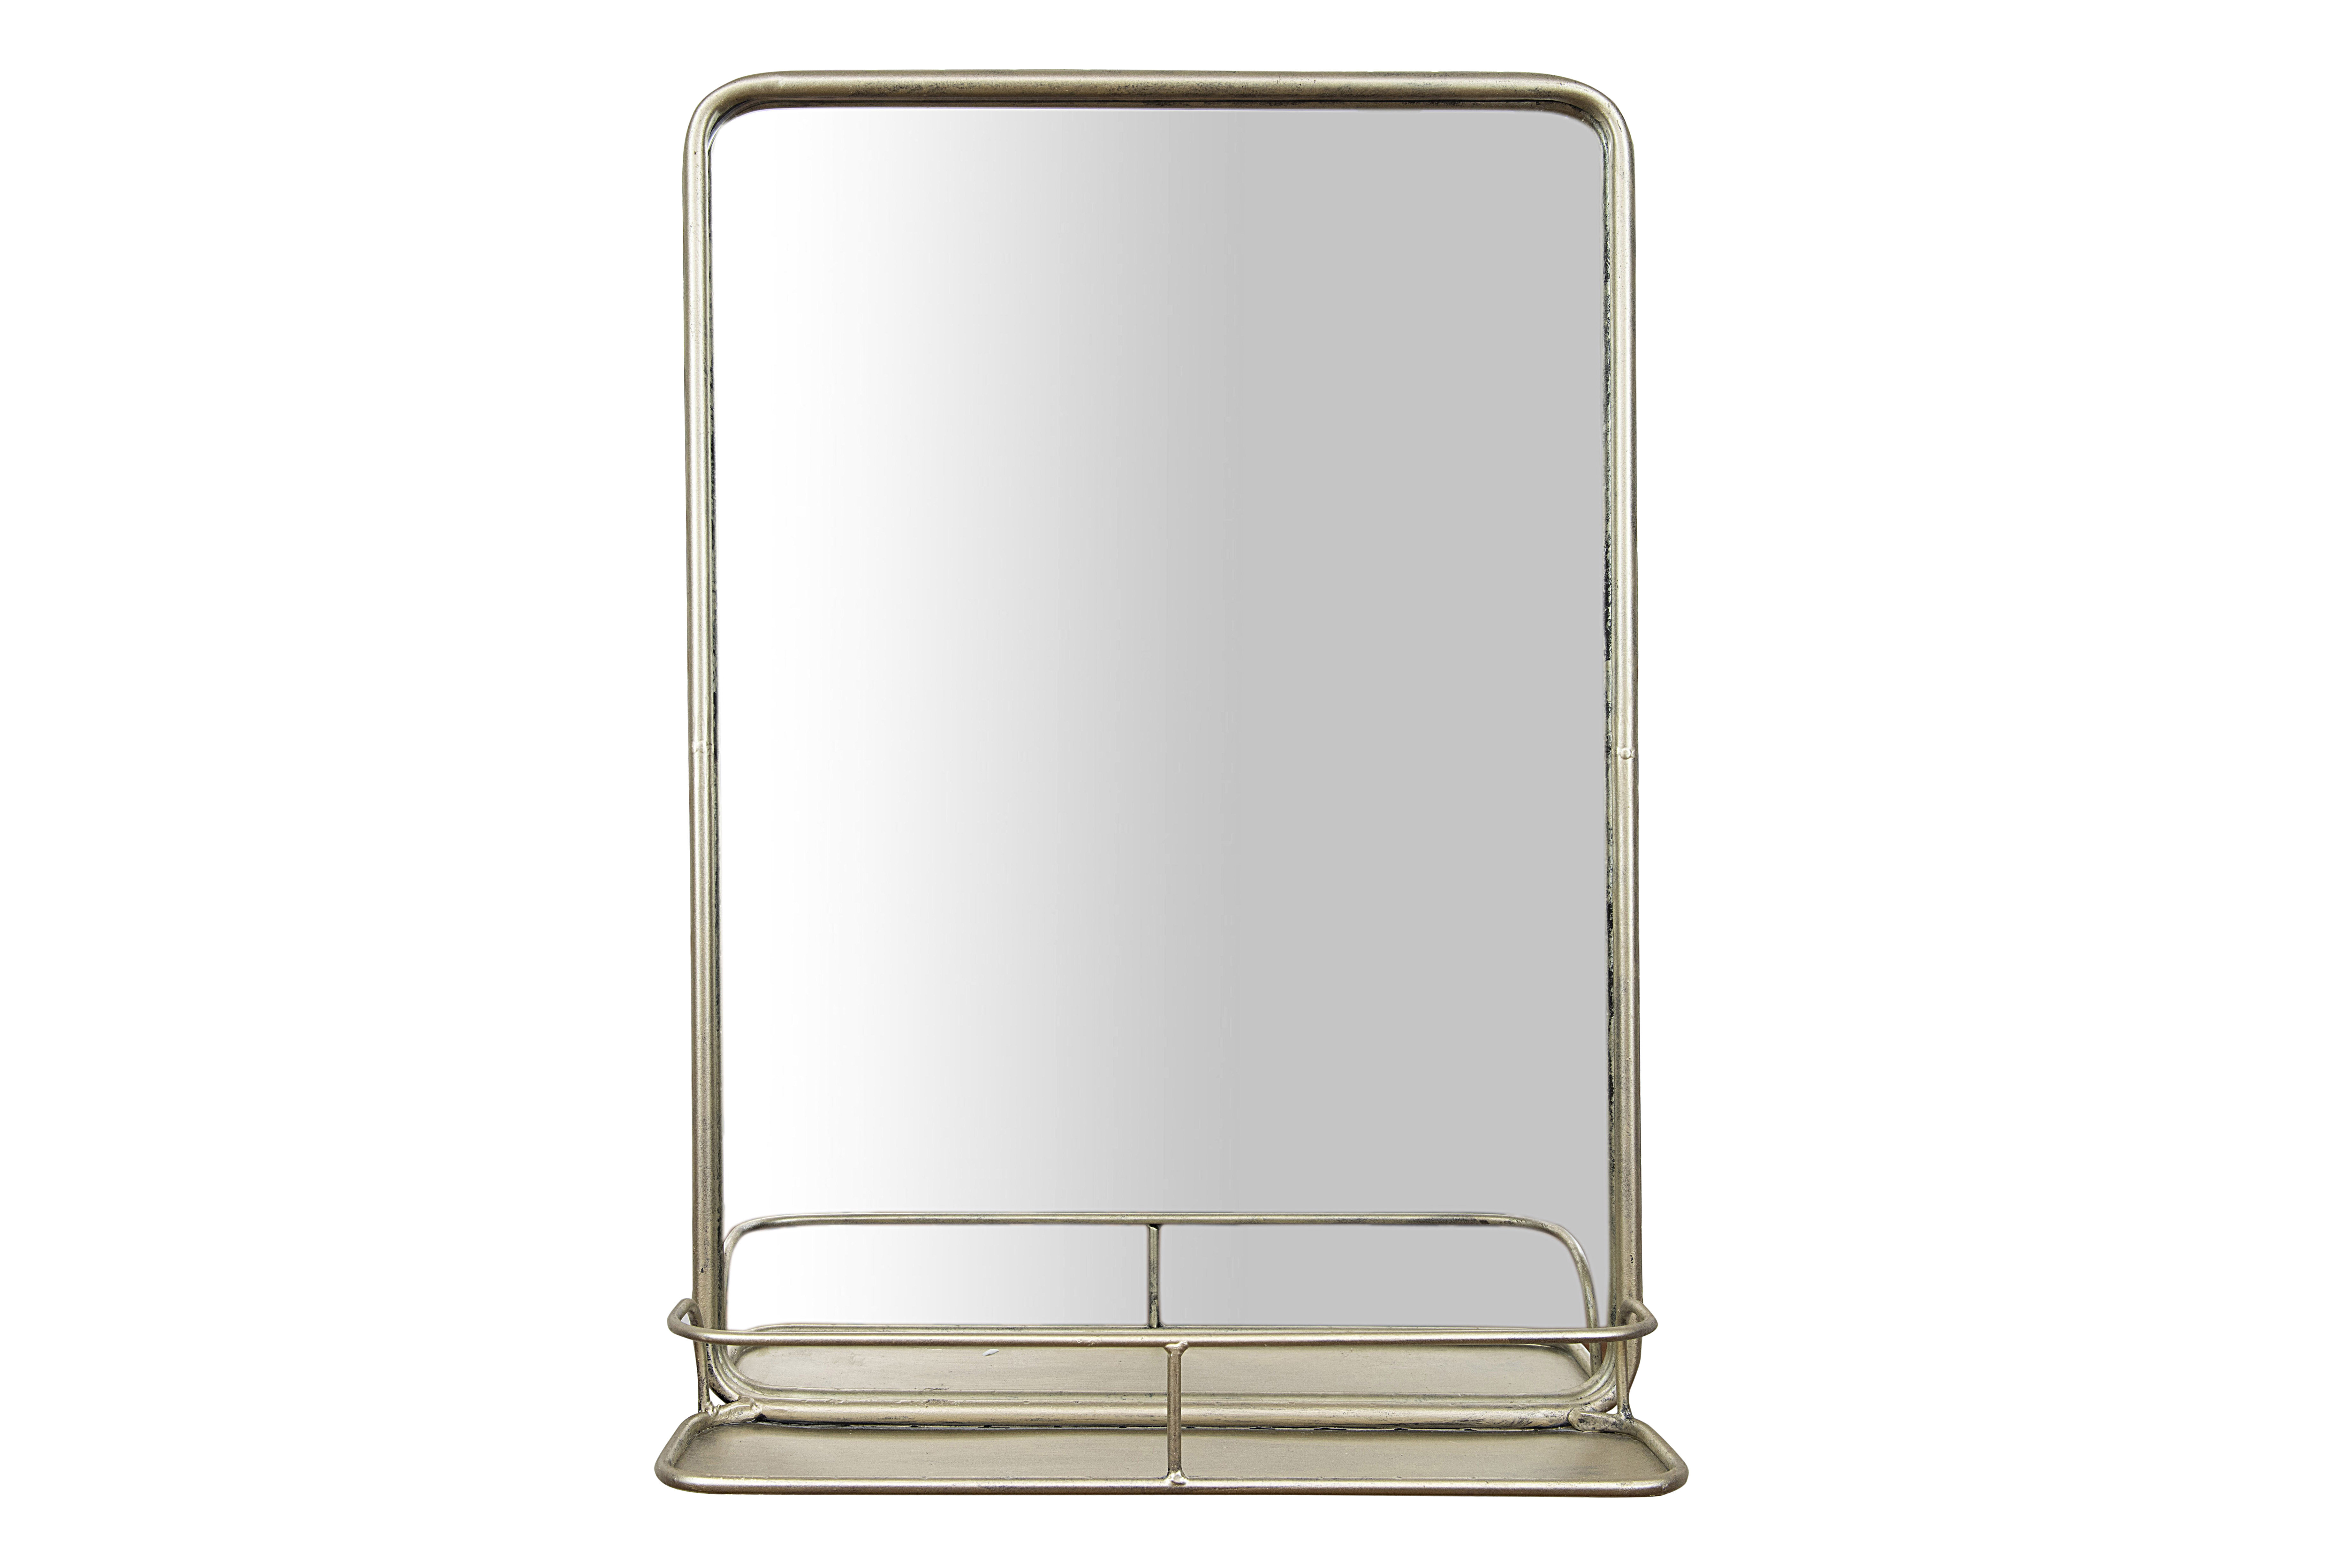 Peetz Modern Rustic Accent Mirror with regard to Koeller Industrial Metal Wall Mirrors (Image 20 of 30)